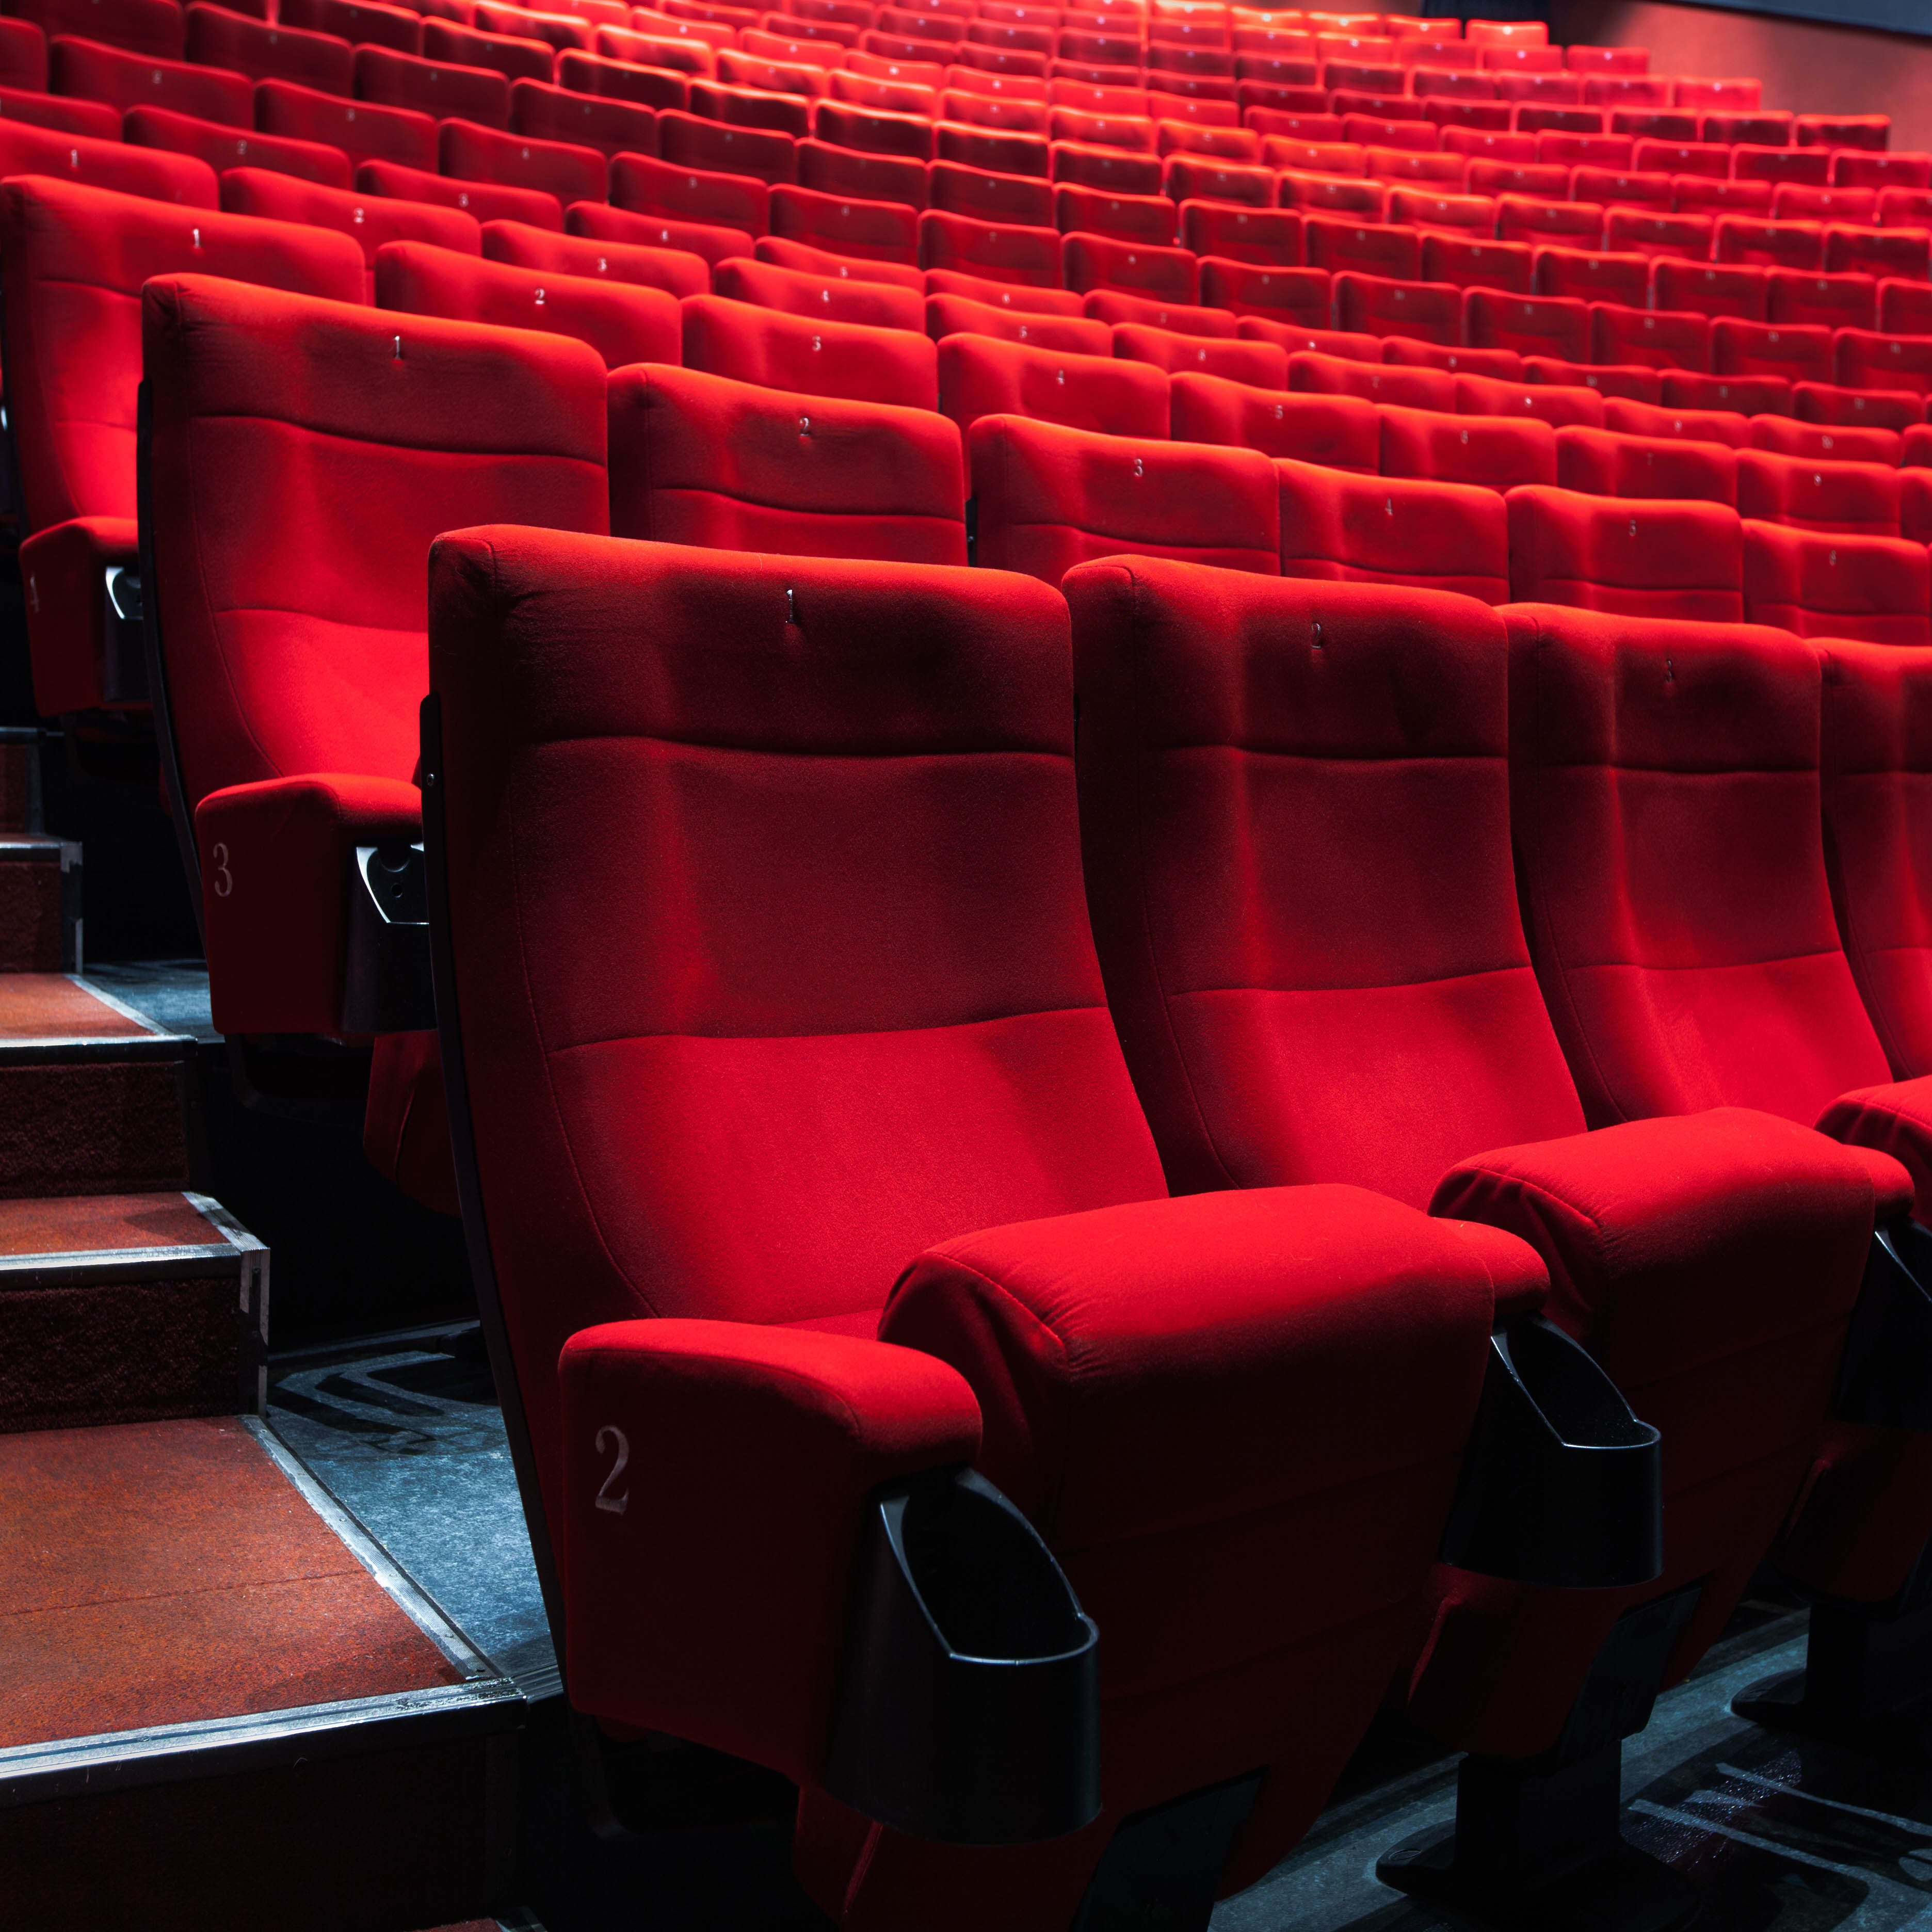 Cinema Raked Seating made better with CineSTEEL